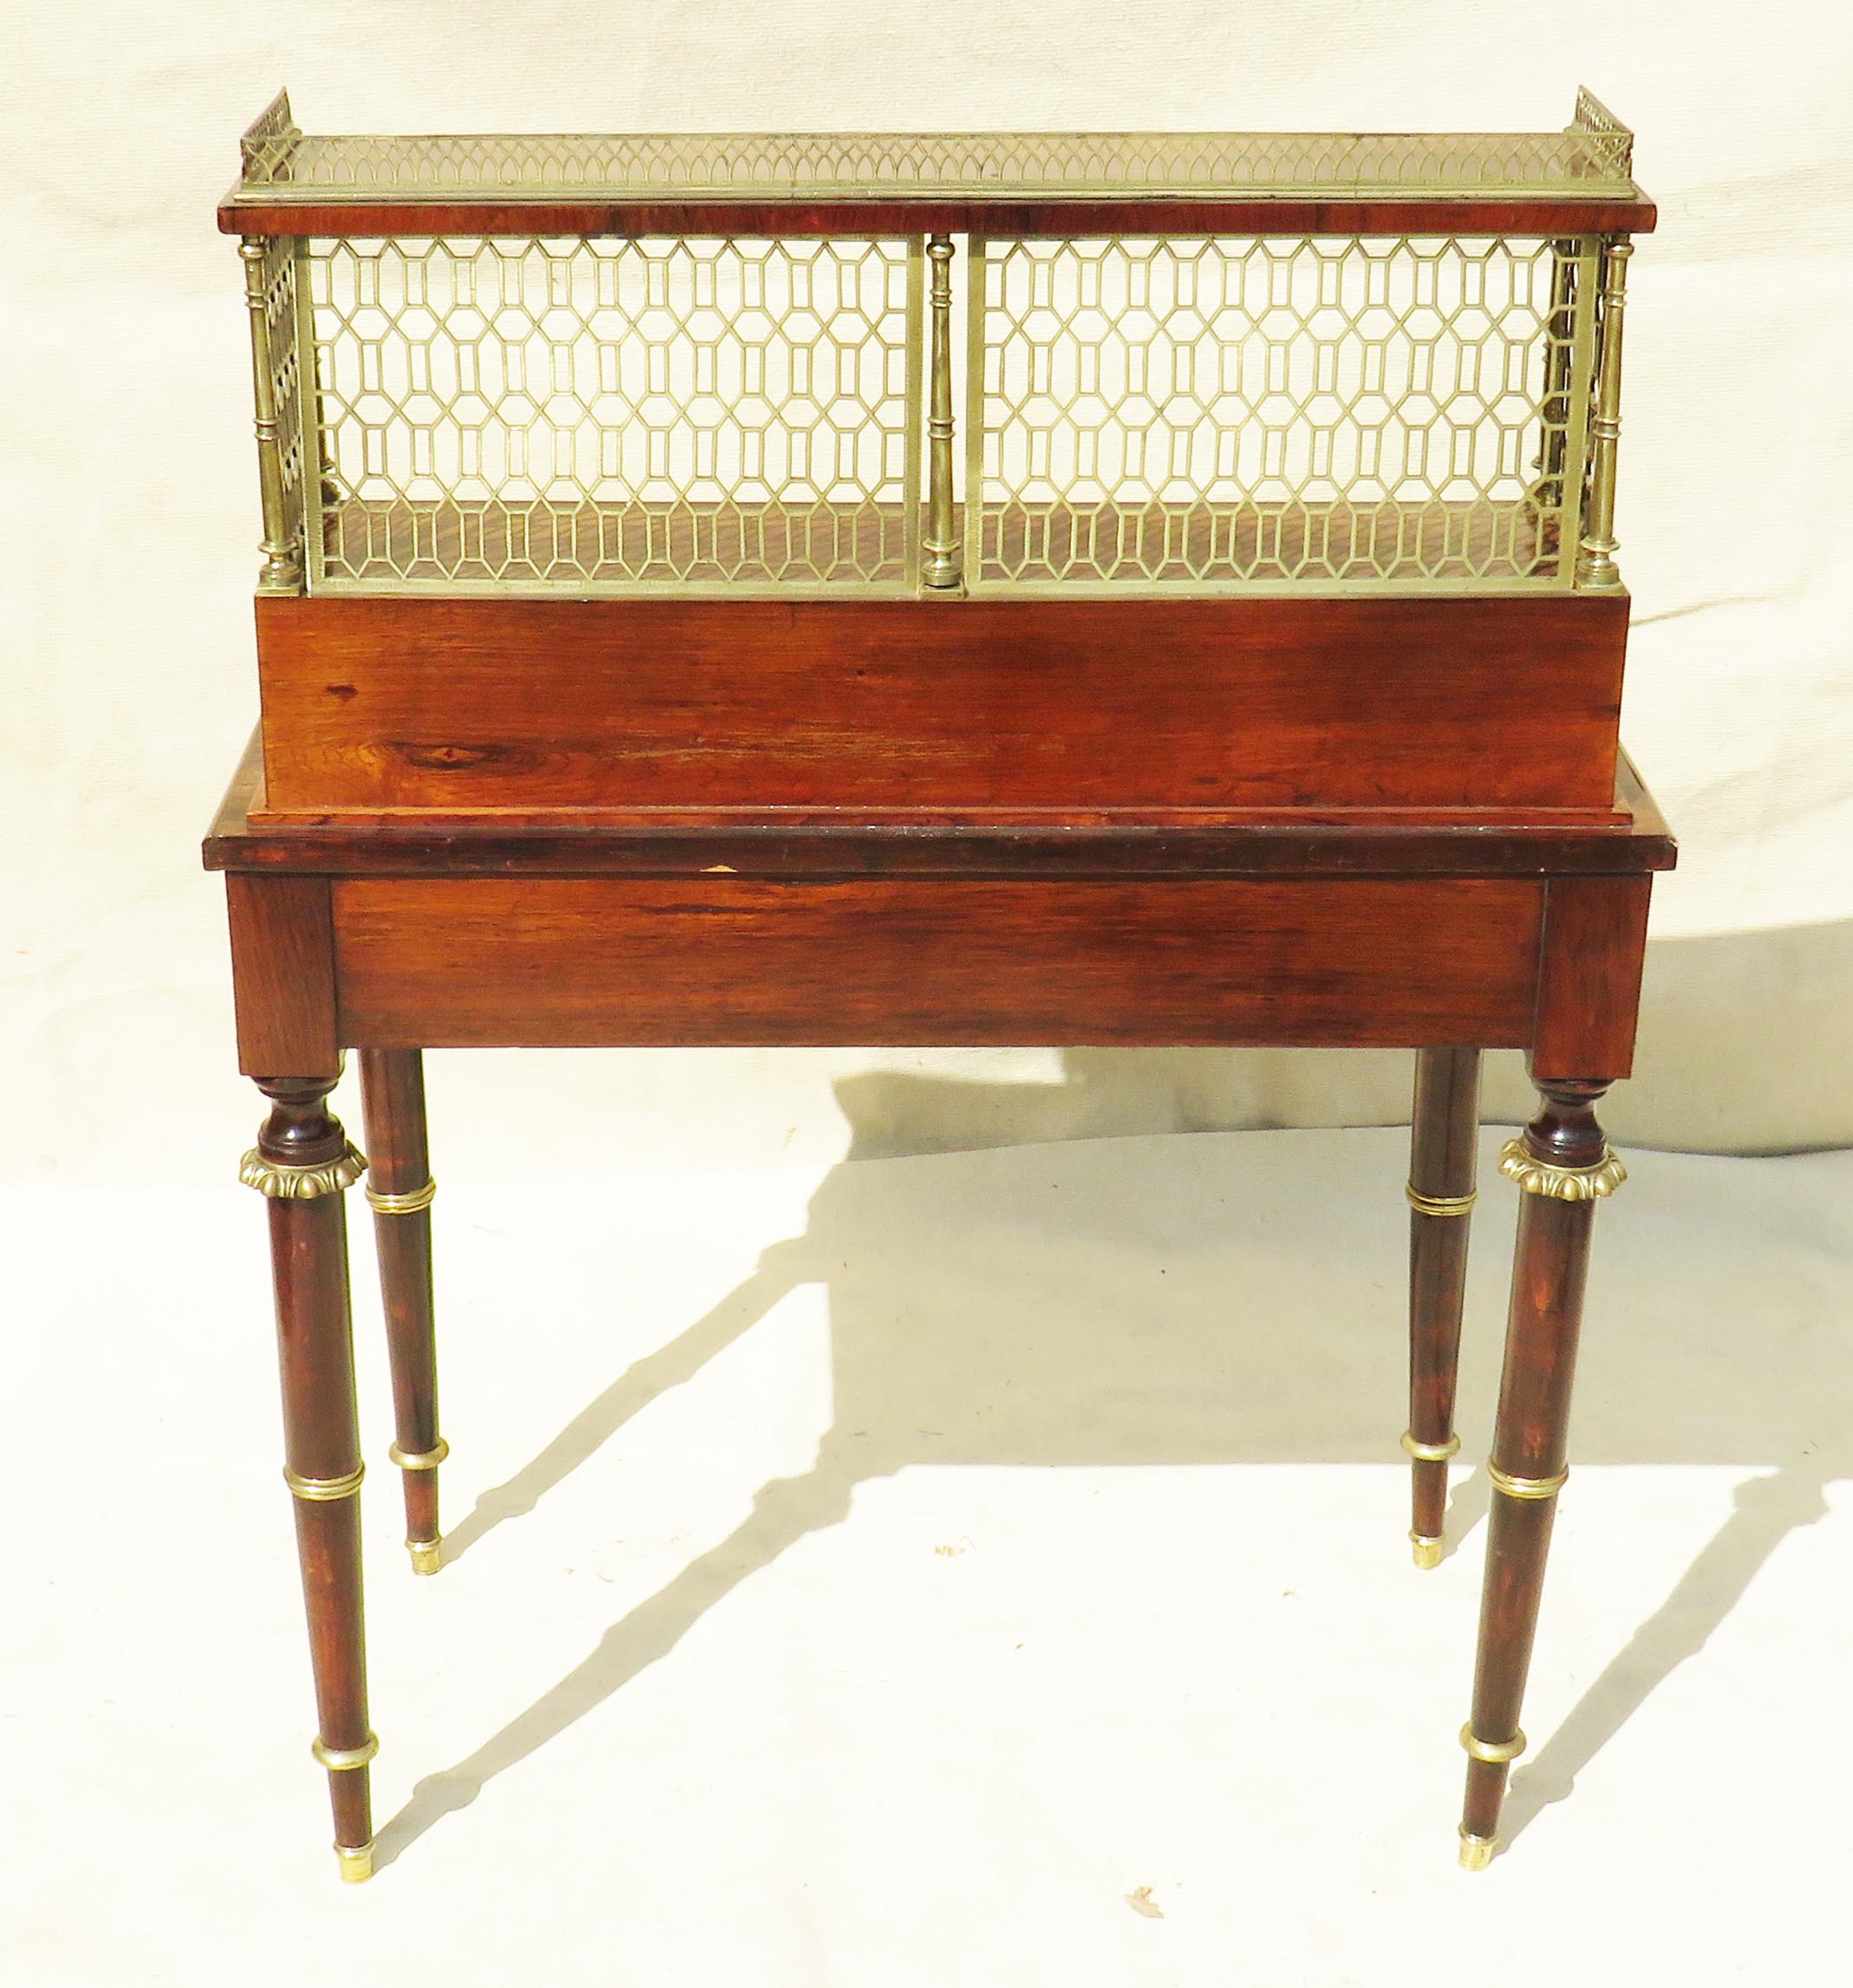 Superb quality Regency period early 19th Century rosewood bonheur du jour - Image 6 of 7